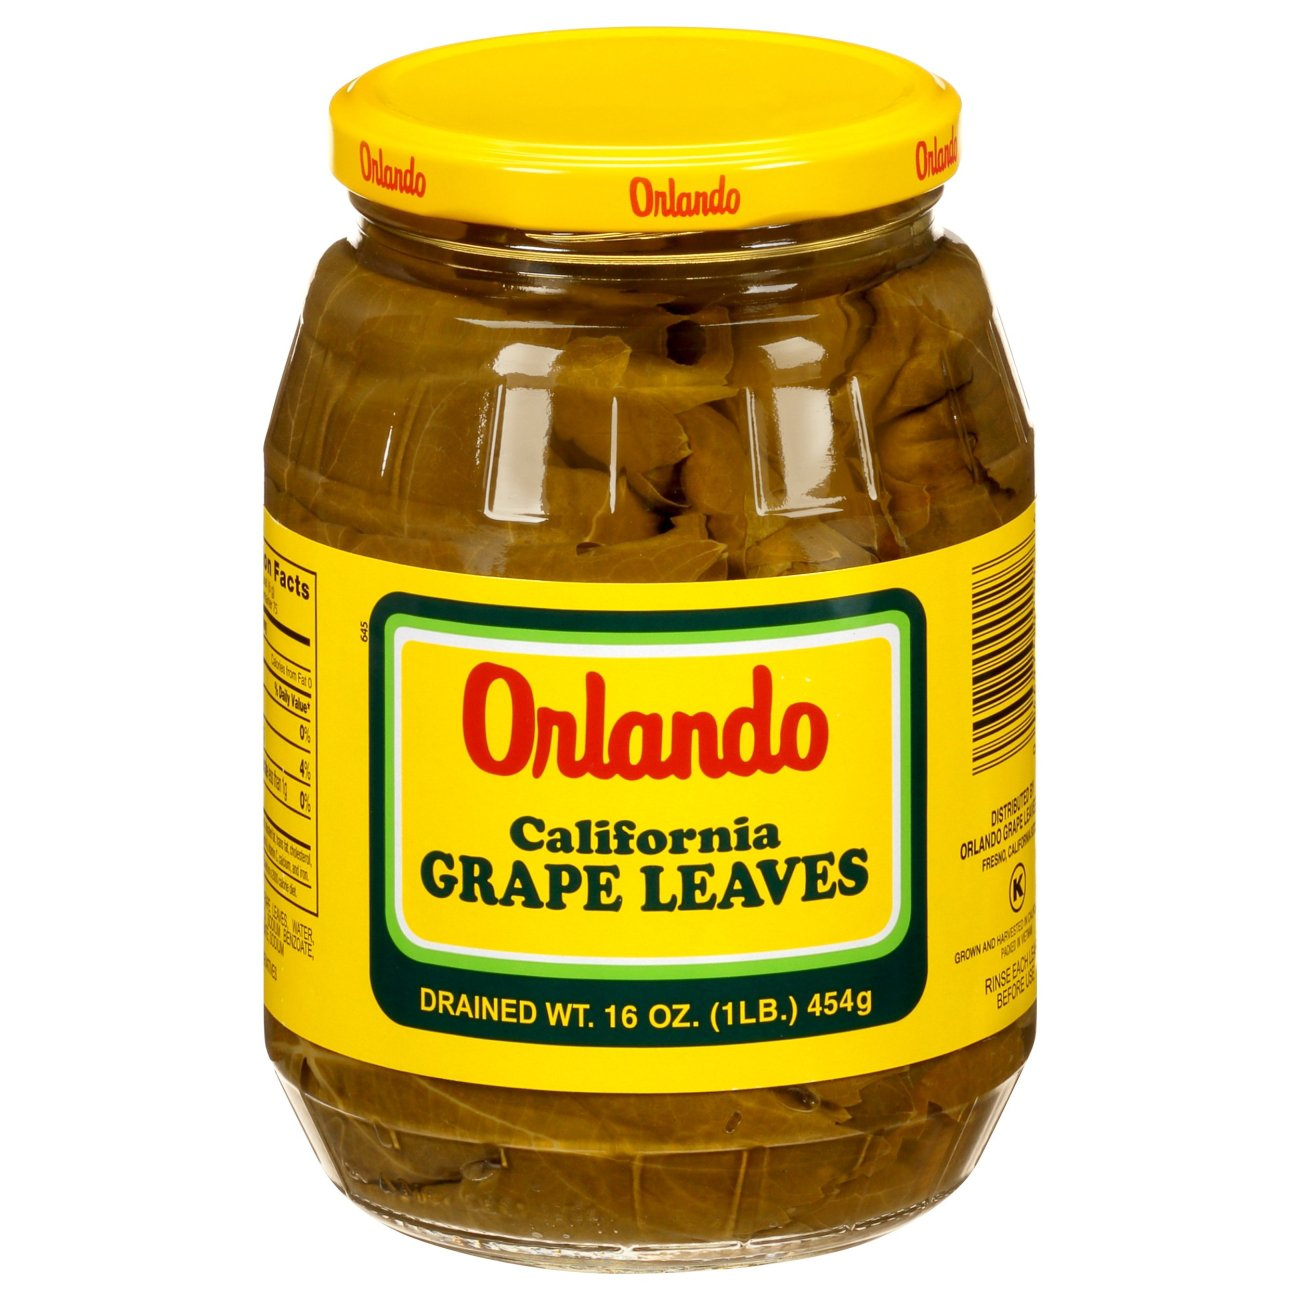 Orlando California Grape Leaves Shop Pantry Meals At H E B